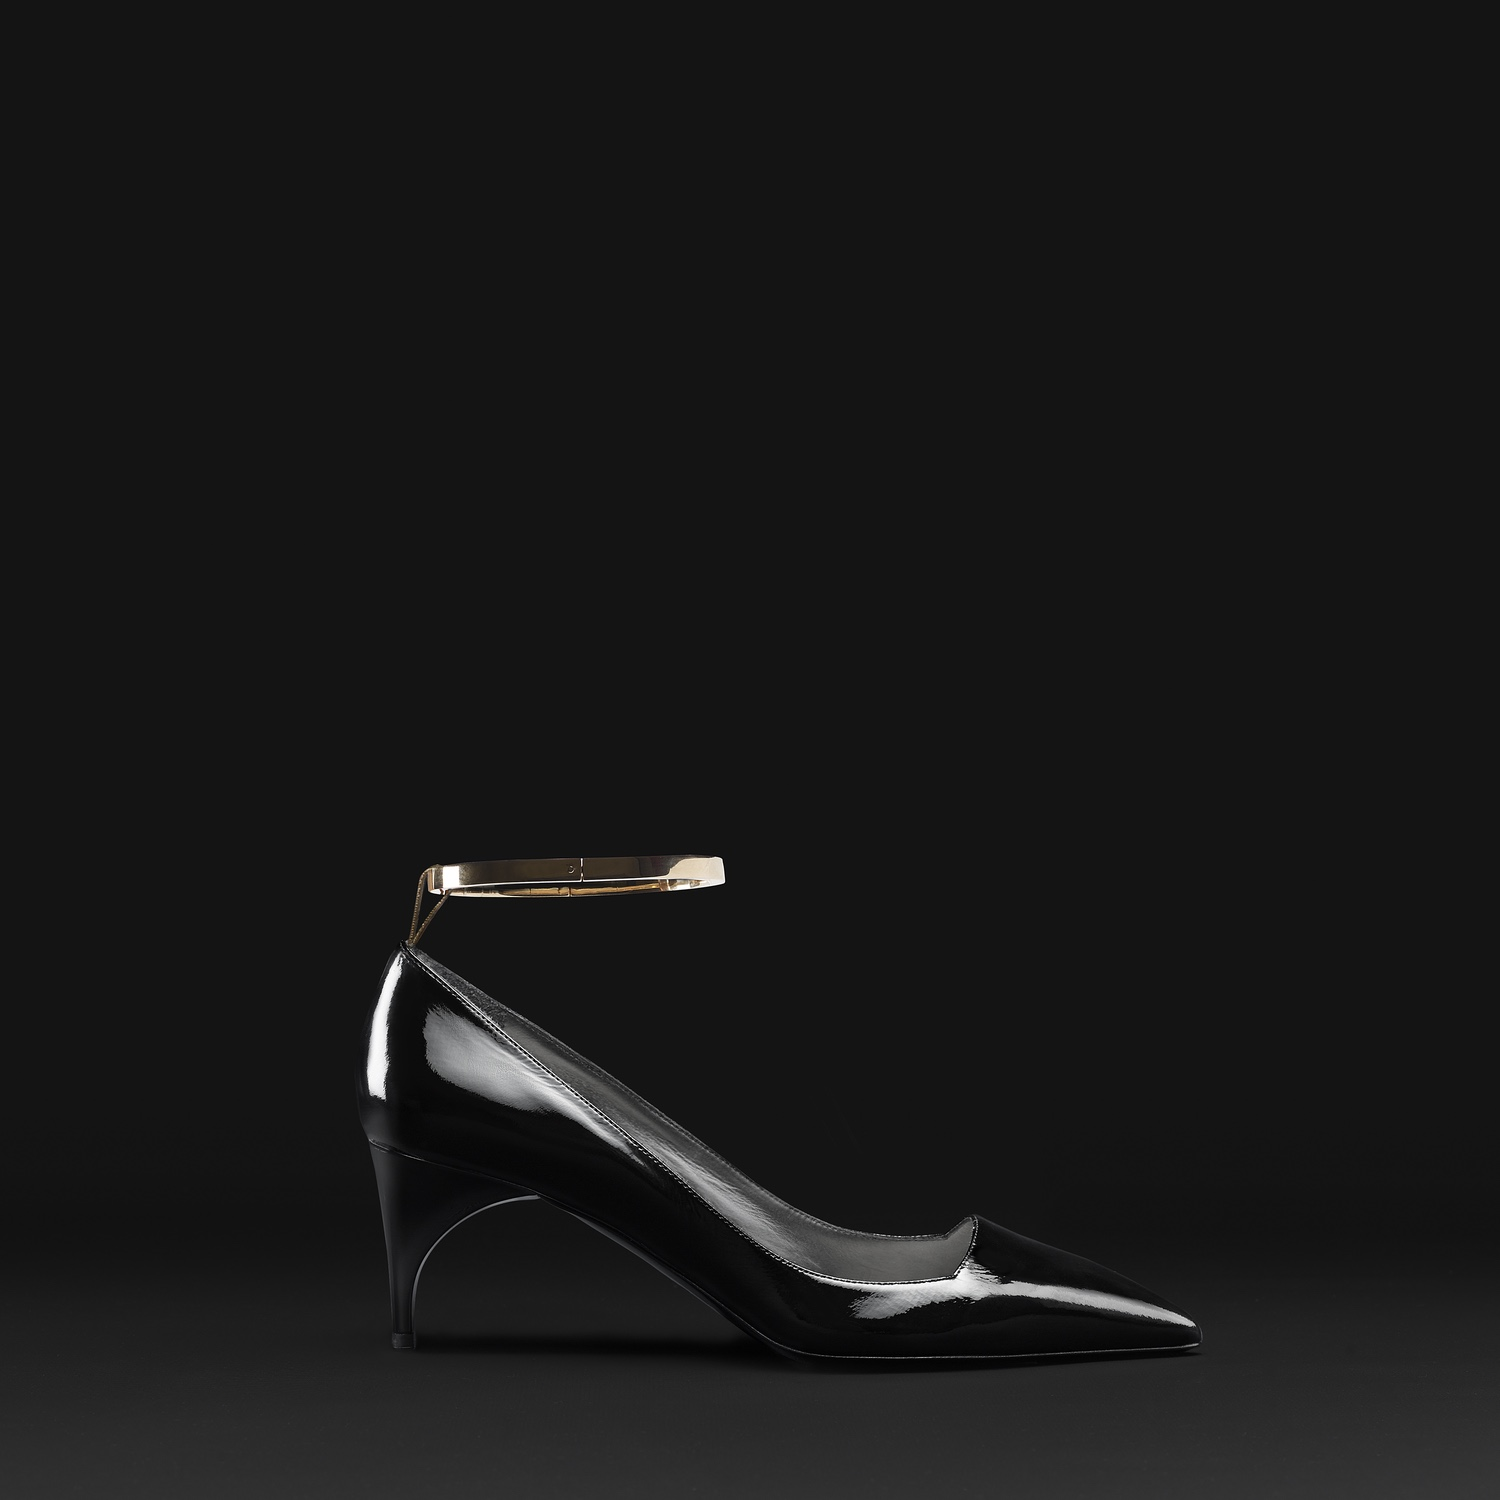 ALAINTONDOWSKI_FALLWINTER2015_SHOES_AT0043-b